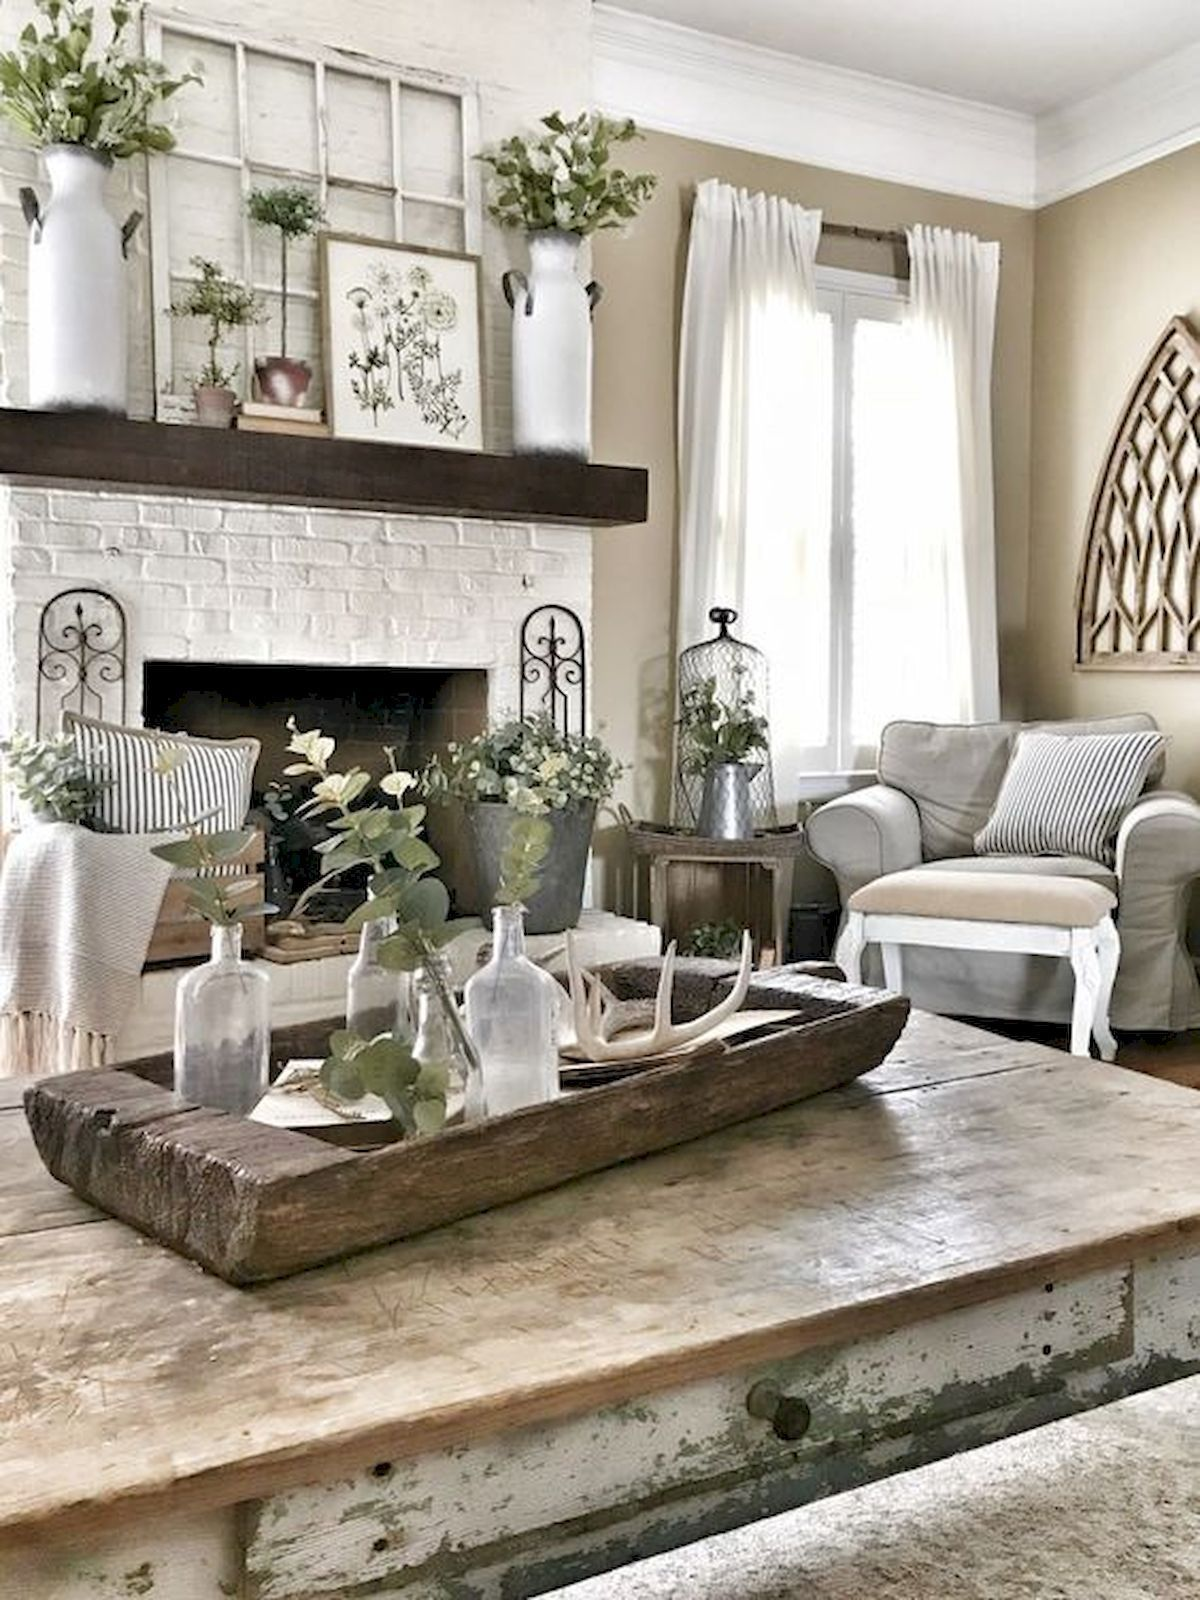 55 Decorating Ideas for Walls In Living Room 2021 in 2020 ...